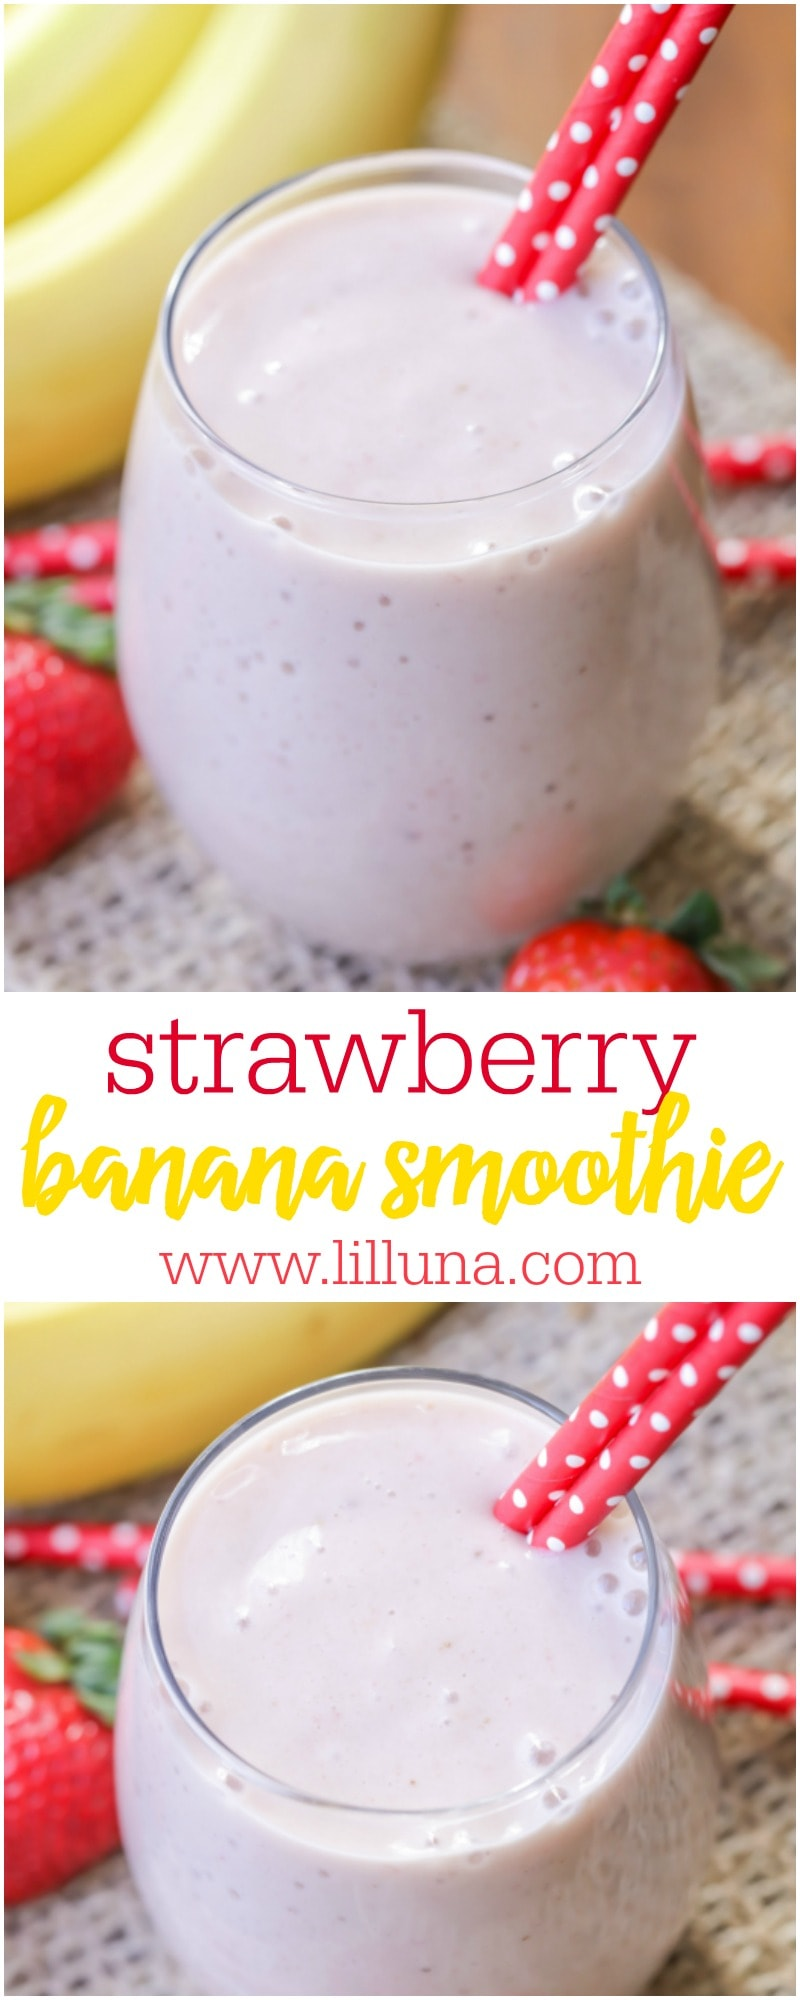 This Strawberry Banana Smoothie recipe is delicious and made with ingredients you probably have on hand - bananas, strawberries, yogurt and milk!